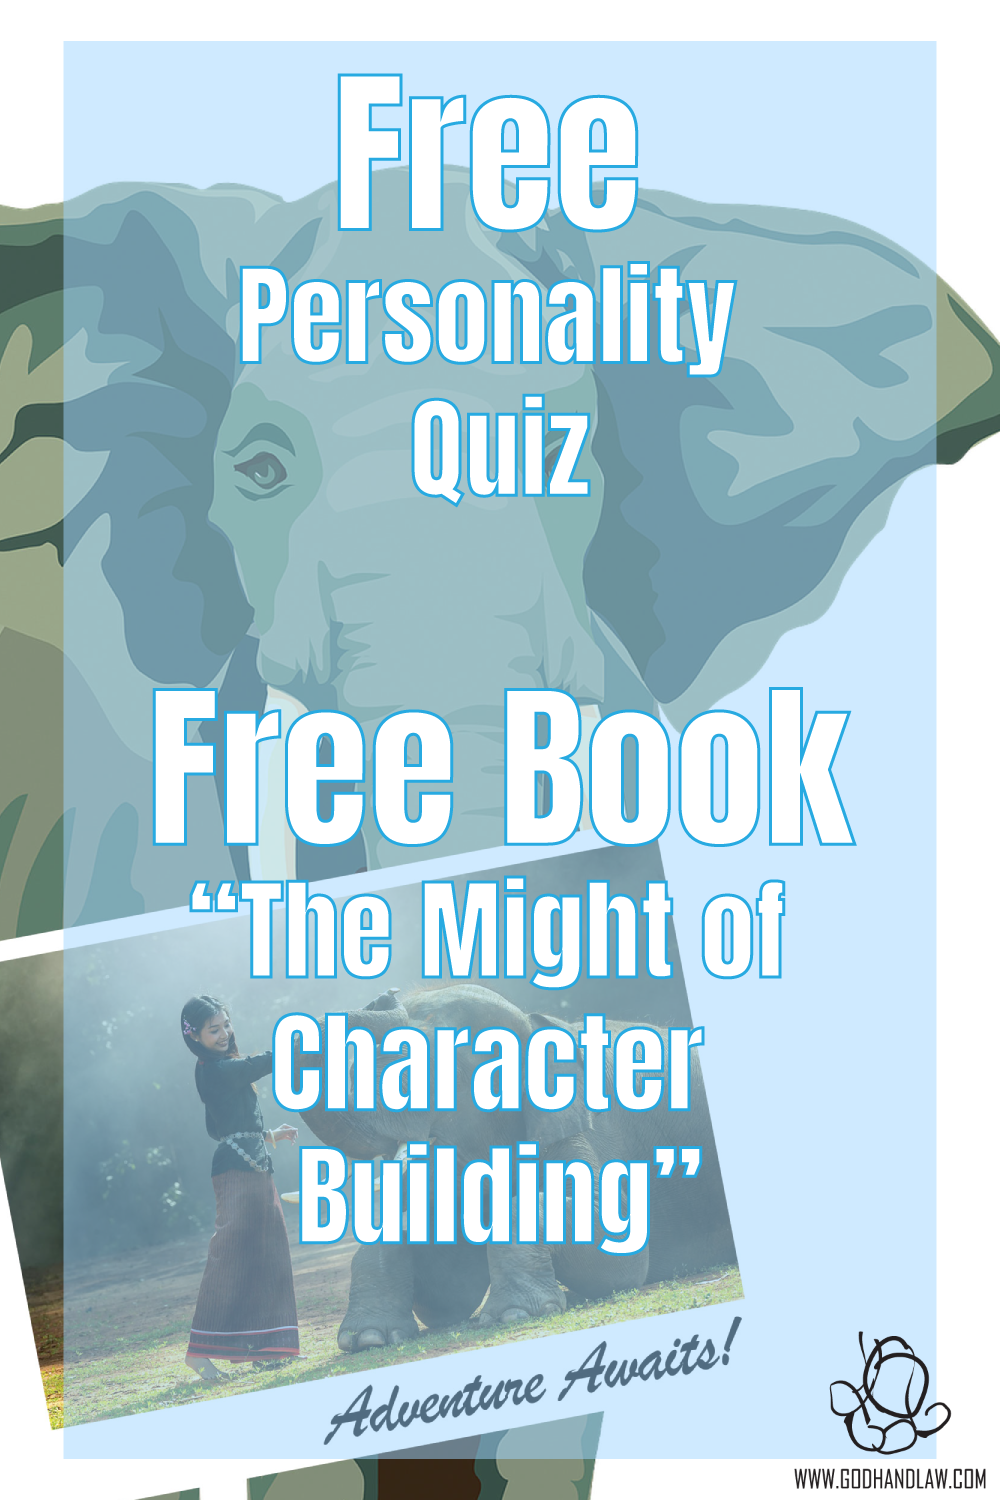 Here you can find out which of the 12 archetypes you are. This Free personality quiz will show you how to develop for personal growth, or with friends as you help each other grow, just goal you can set for you and your Millennials friends